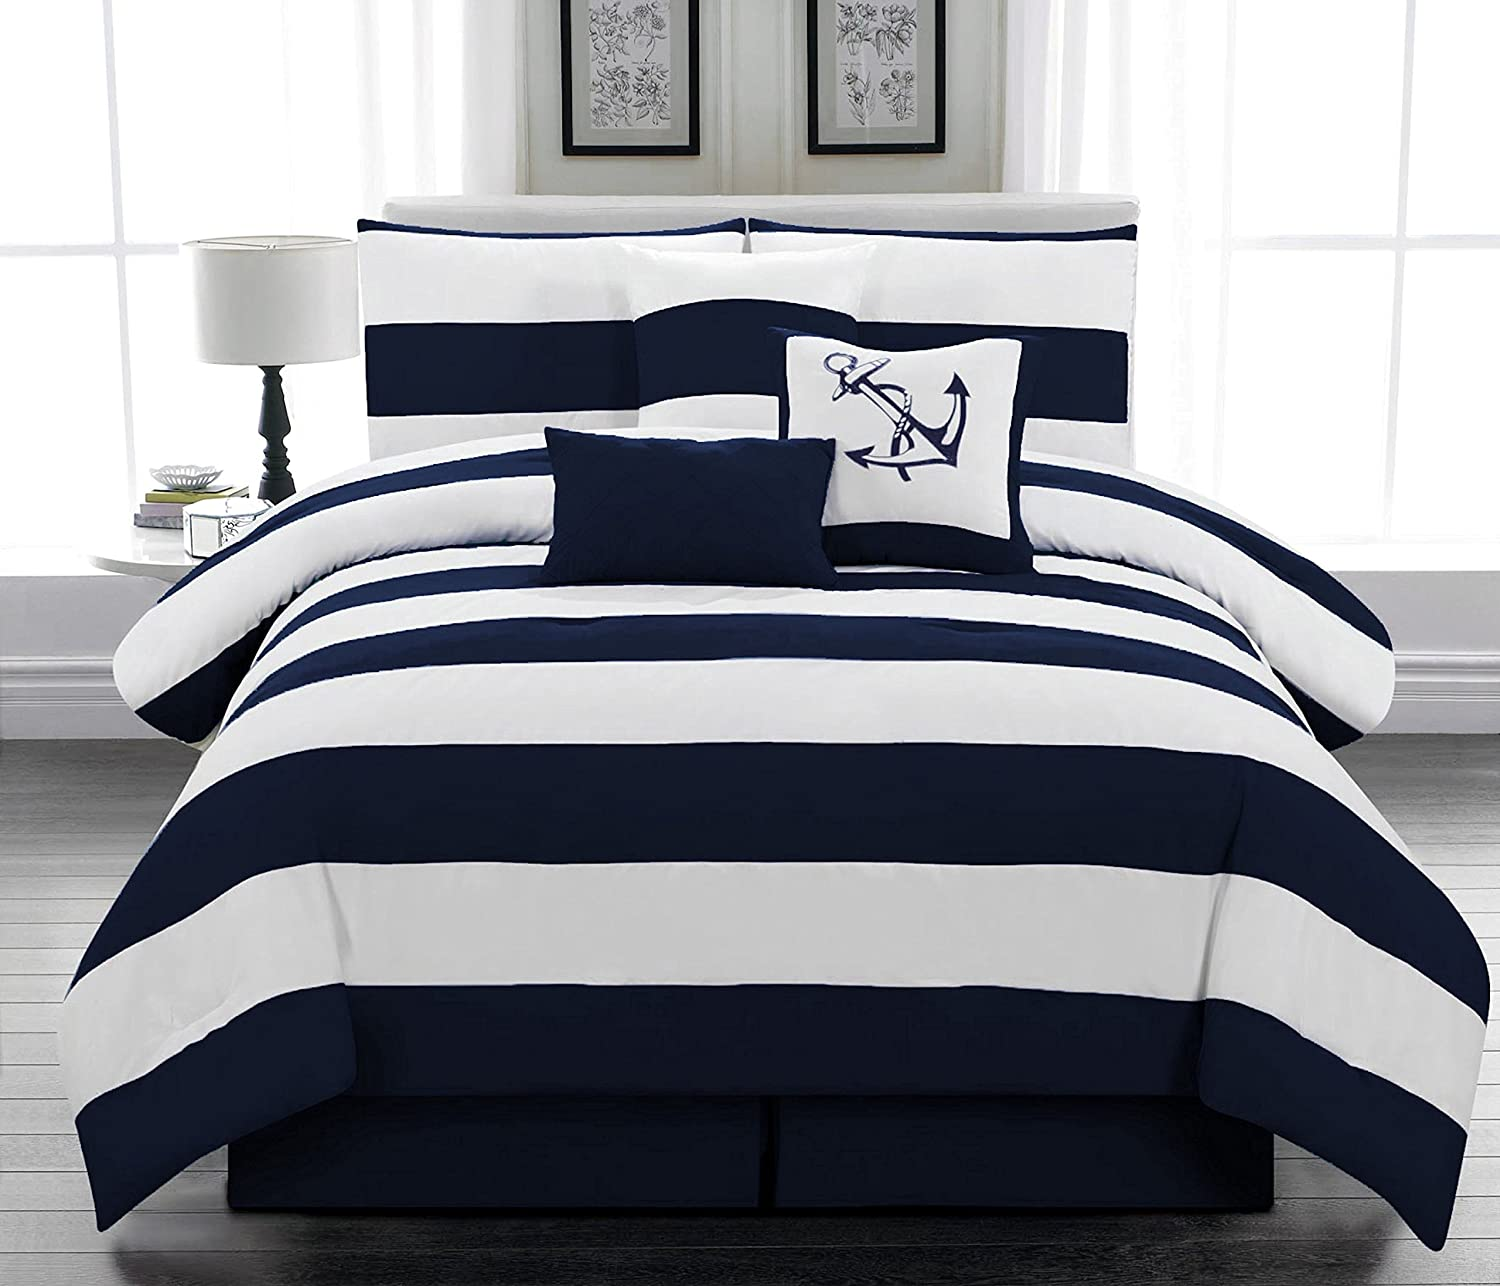 Nautical Themed Bedroom Nautical Bedroom Nautical Decorations